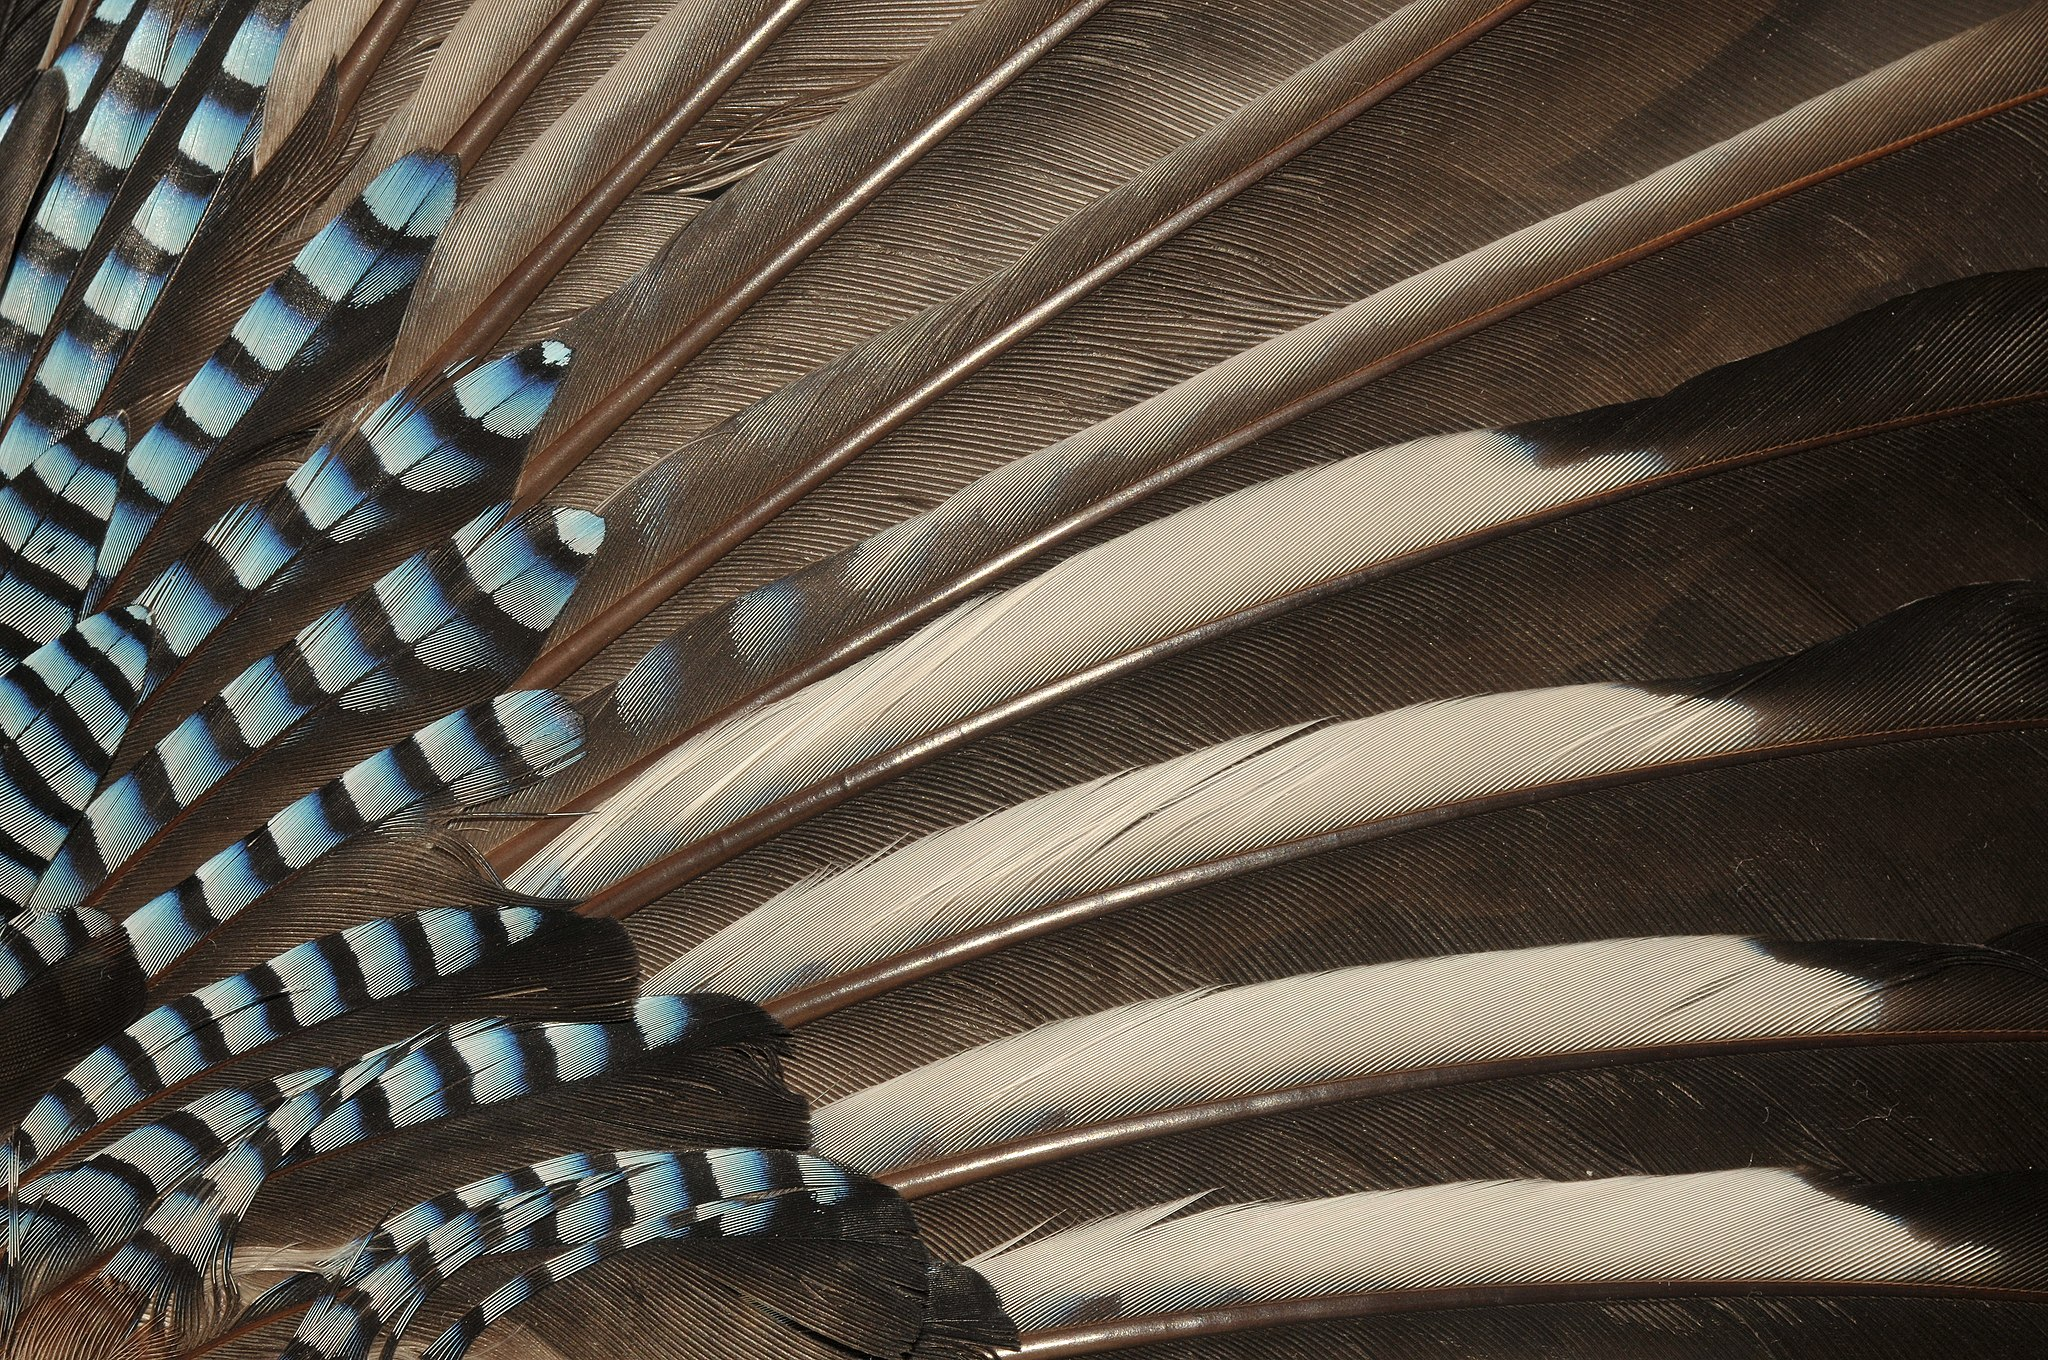 Pennaceous feathers by the Eurasian jay in Hanover, Germany.